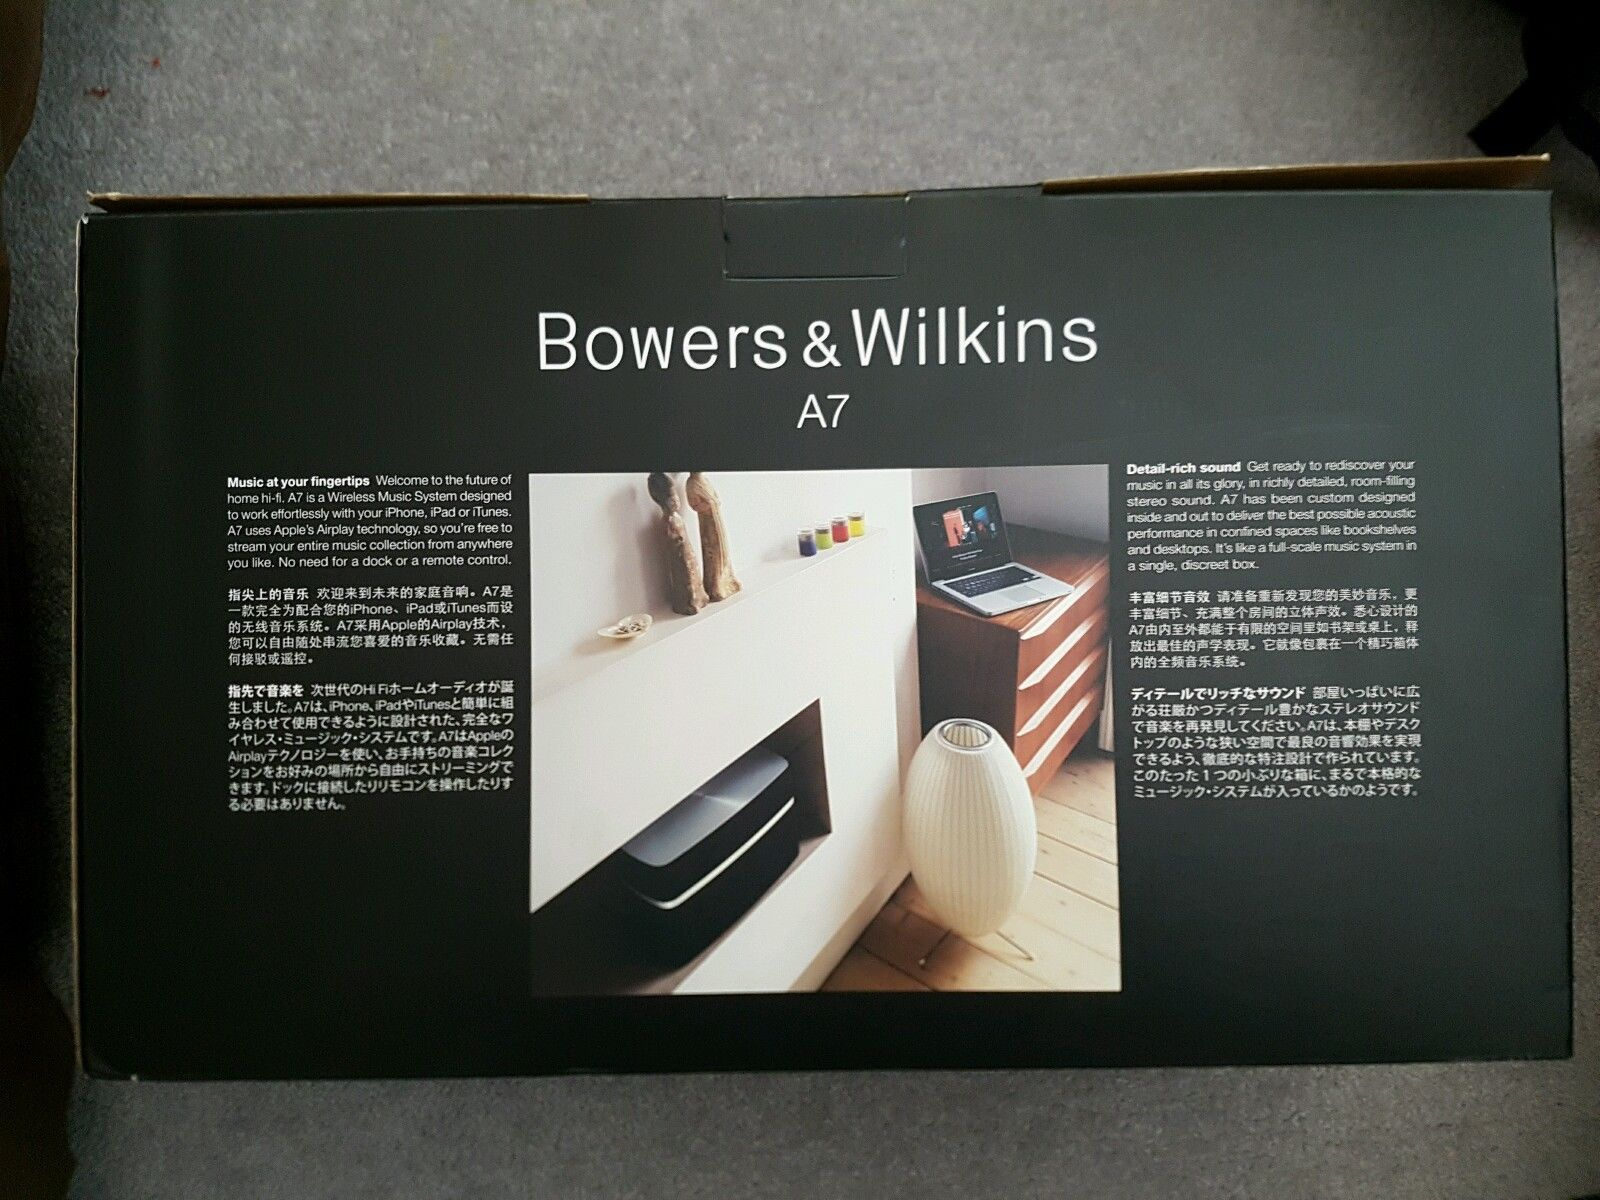 fs bowers and wilkins b w a7 speaker with airplay hifi audio visual classifieds stereonet. Black Bedroom Furniture Sets. Home Design Ideas